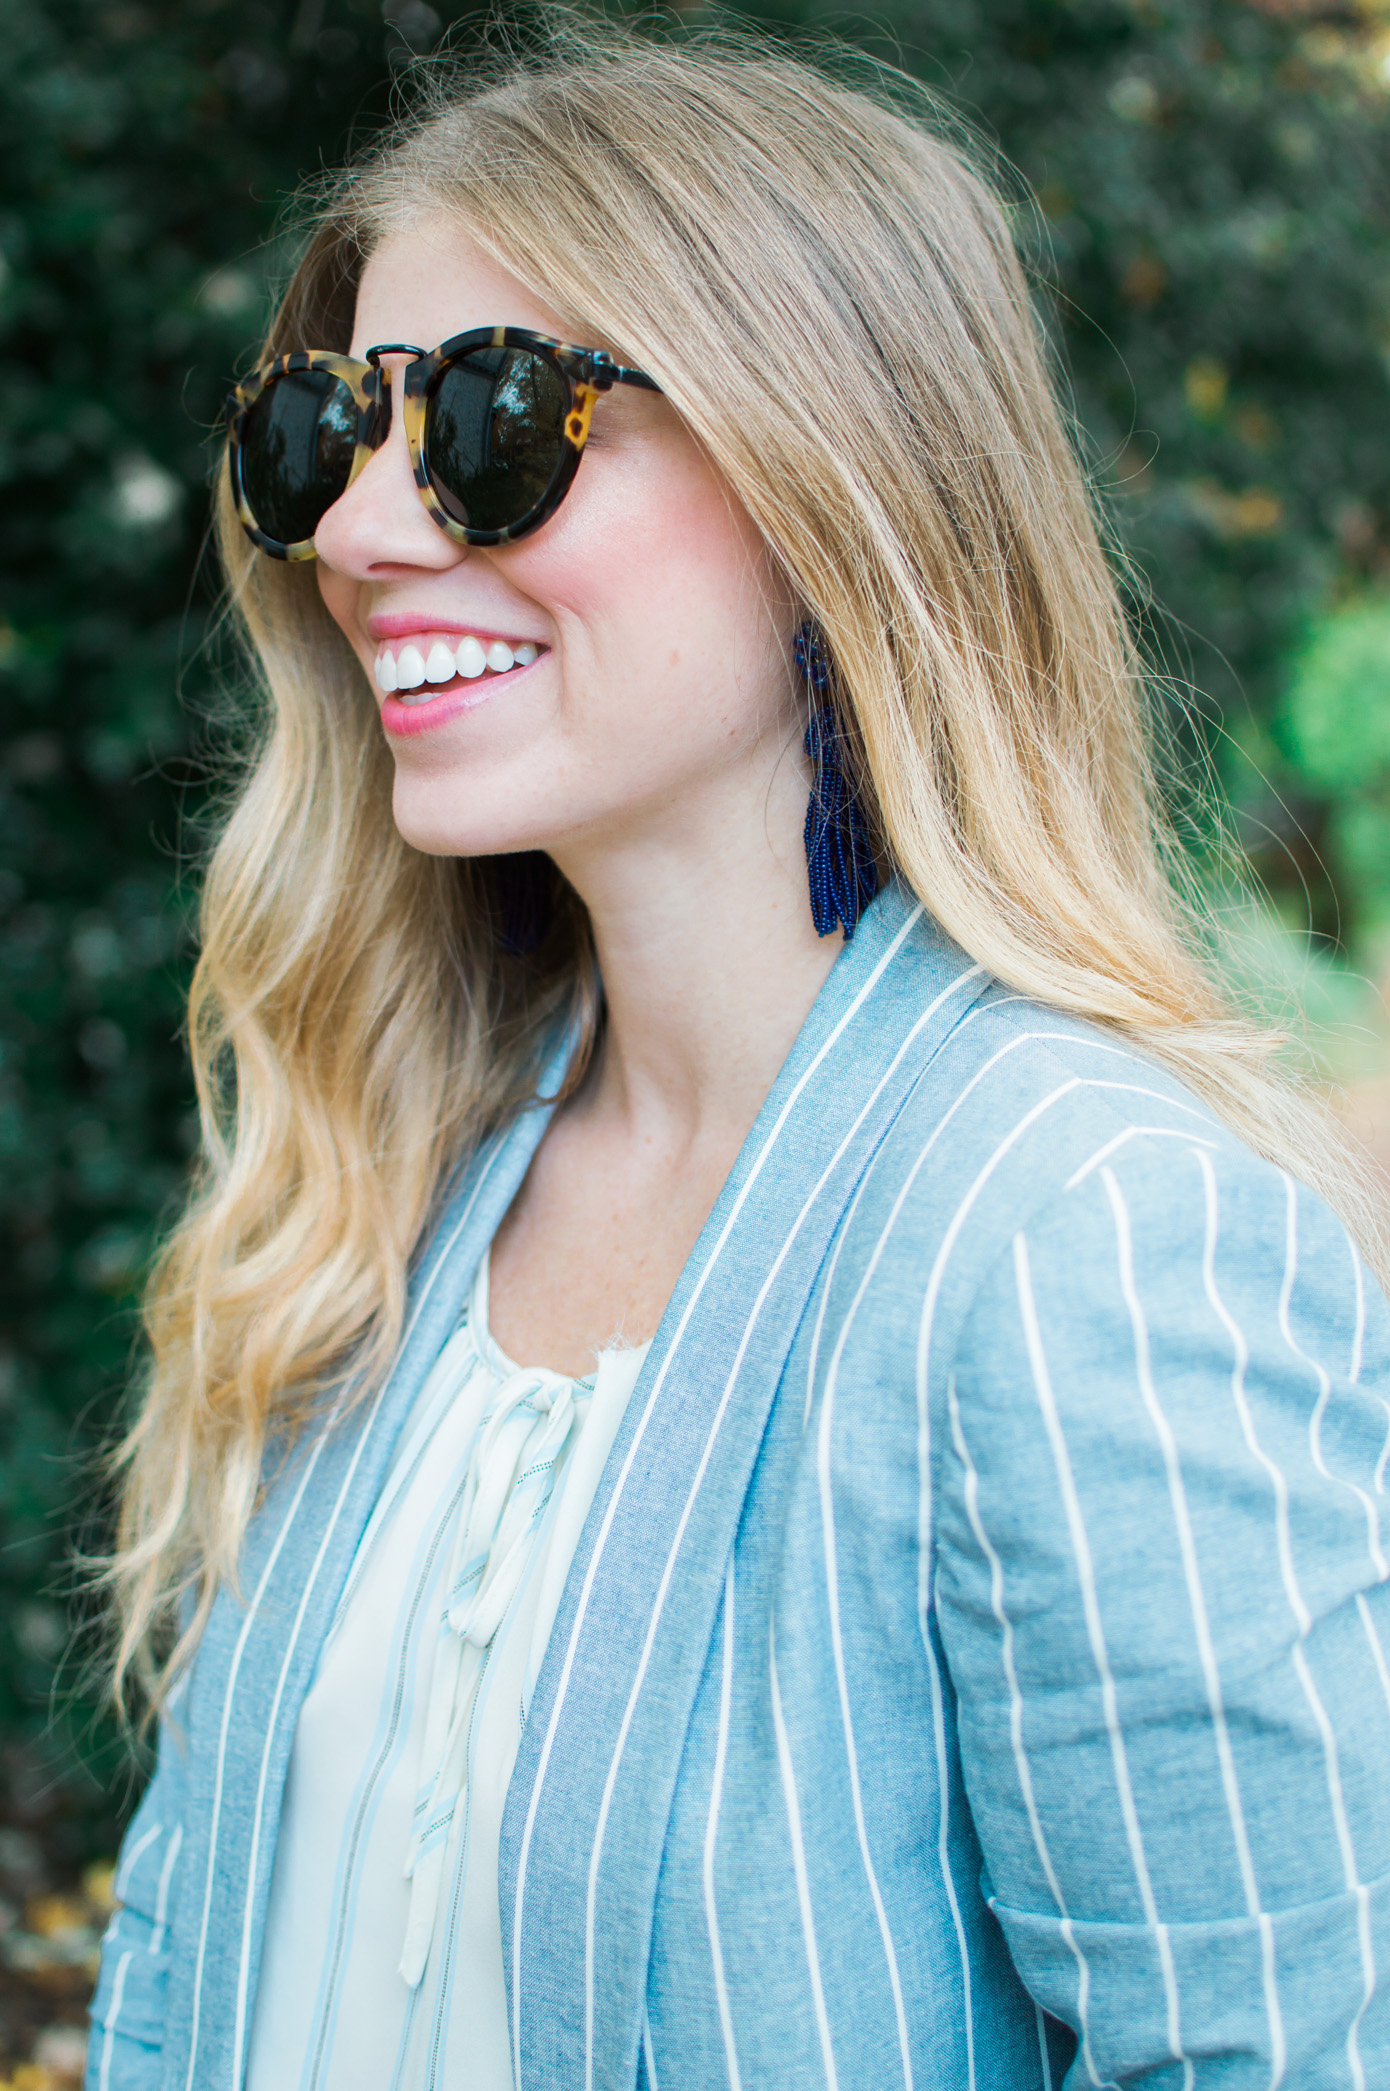 Lisi Lerch Tassel Earrings | Striped Boyfriend Blazer | Louella Reese Life & Style Blog